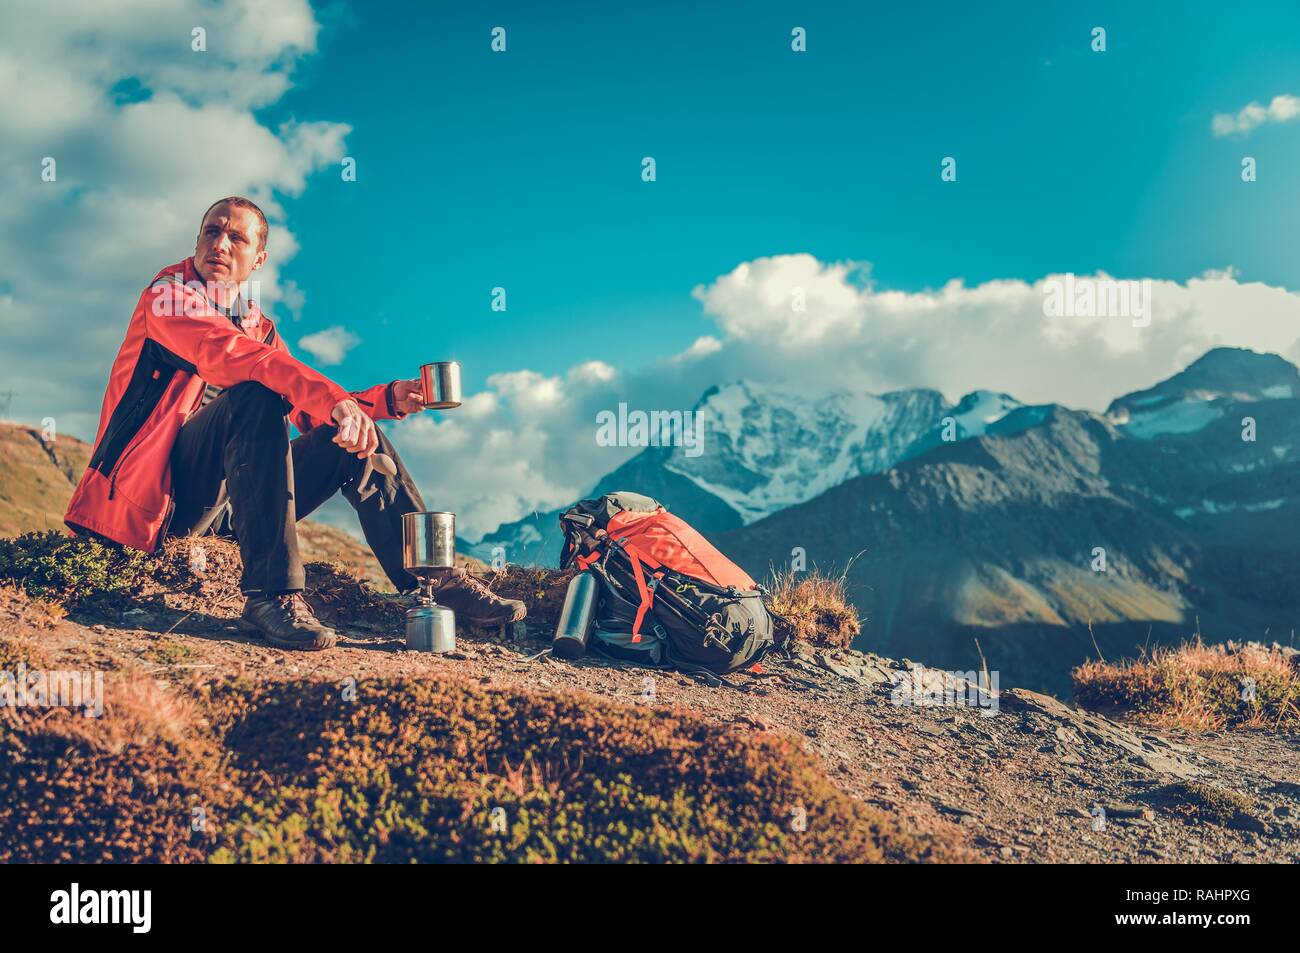 Hot Drink on a Trail. Caucasian Backpacker in His 30s Taking Short Break and Enjoying Warm Tea. - Stock Image